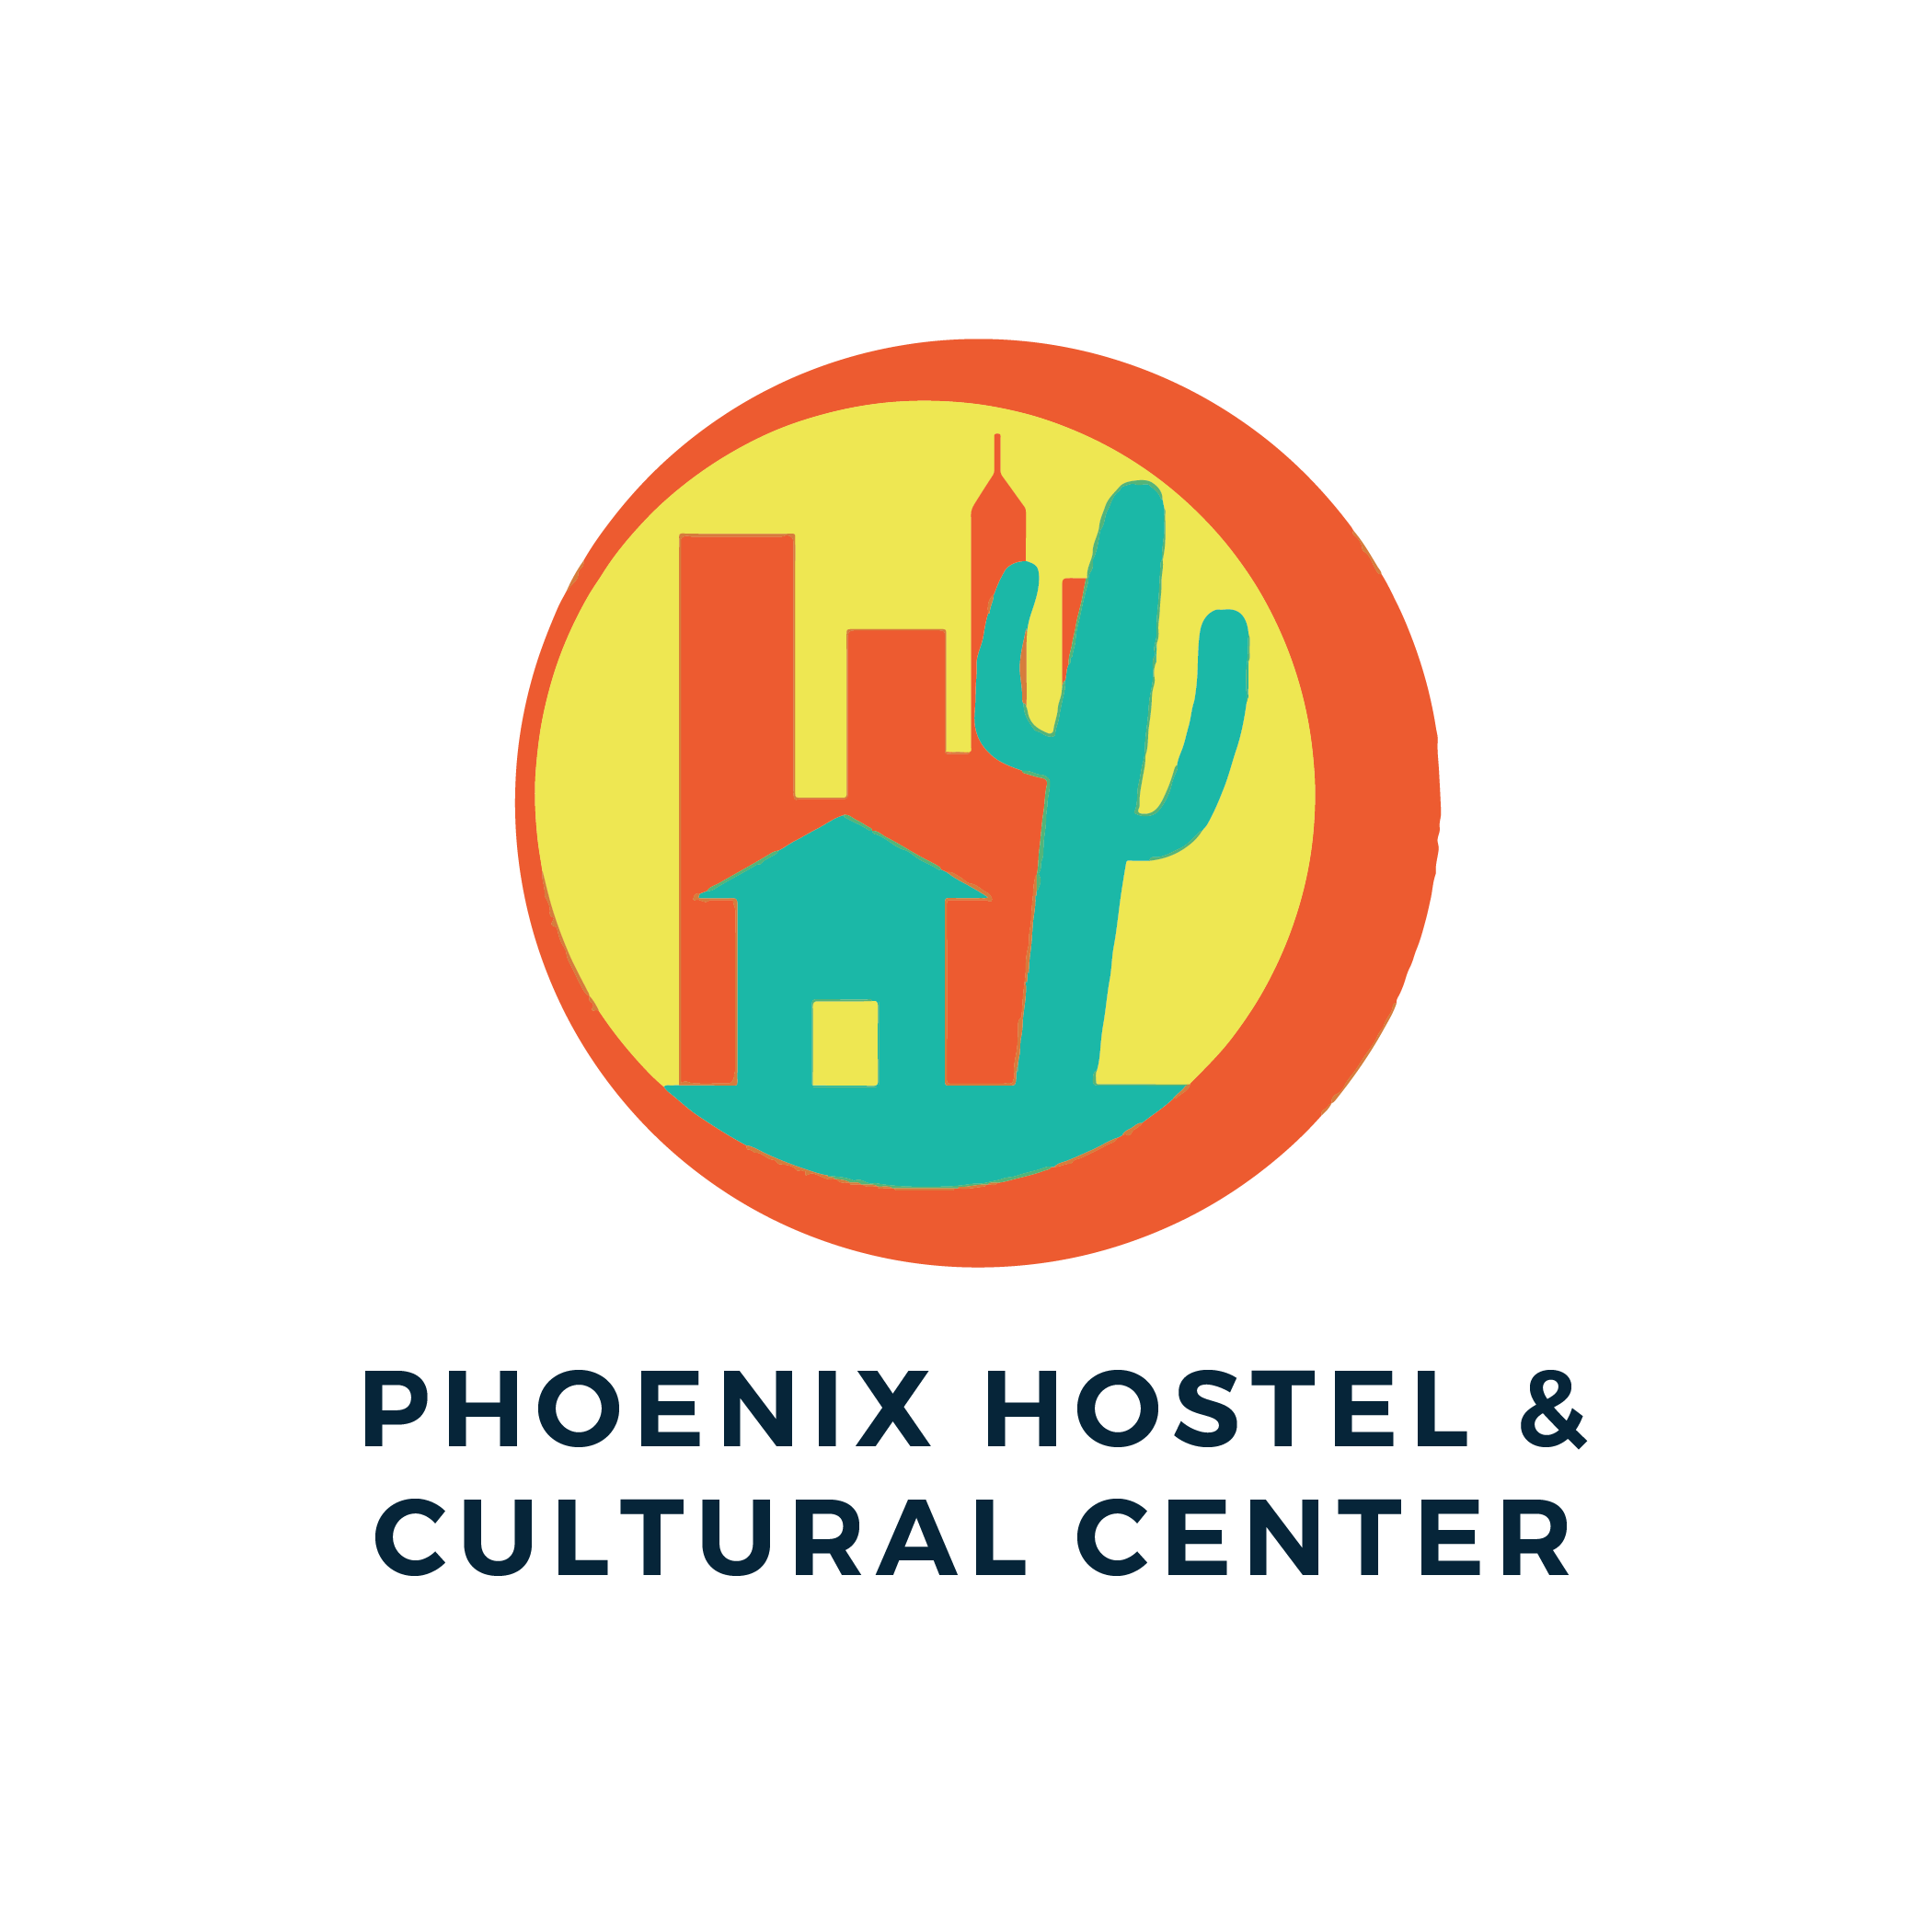 Phoenix Hostel and cultural center-01.png